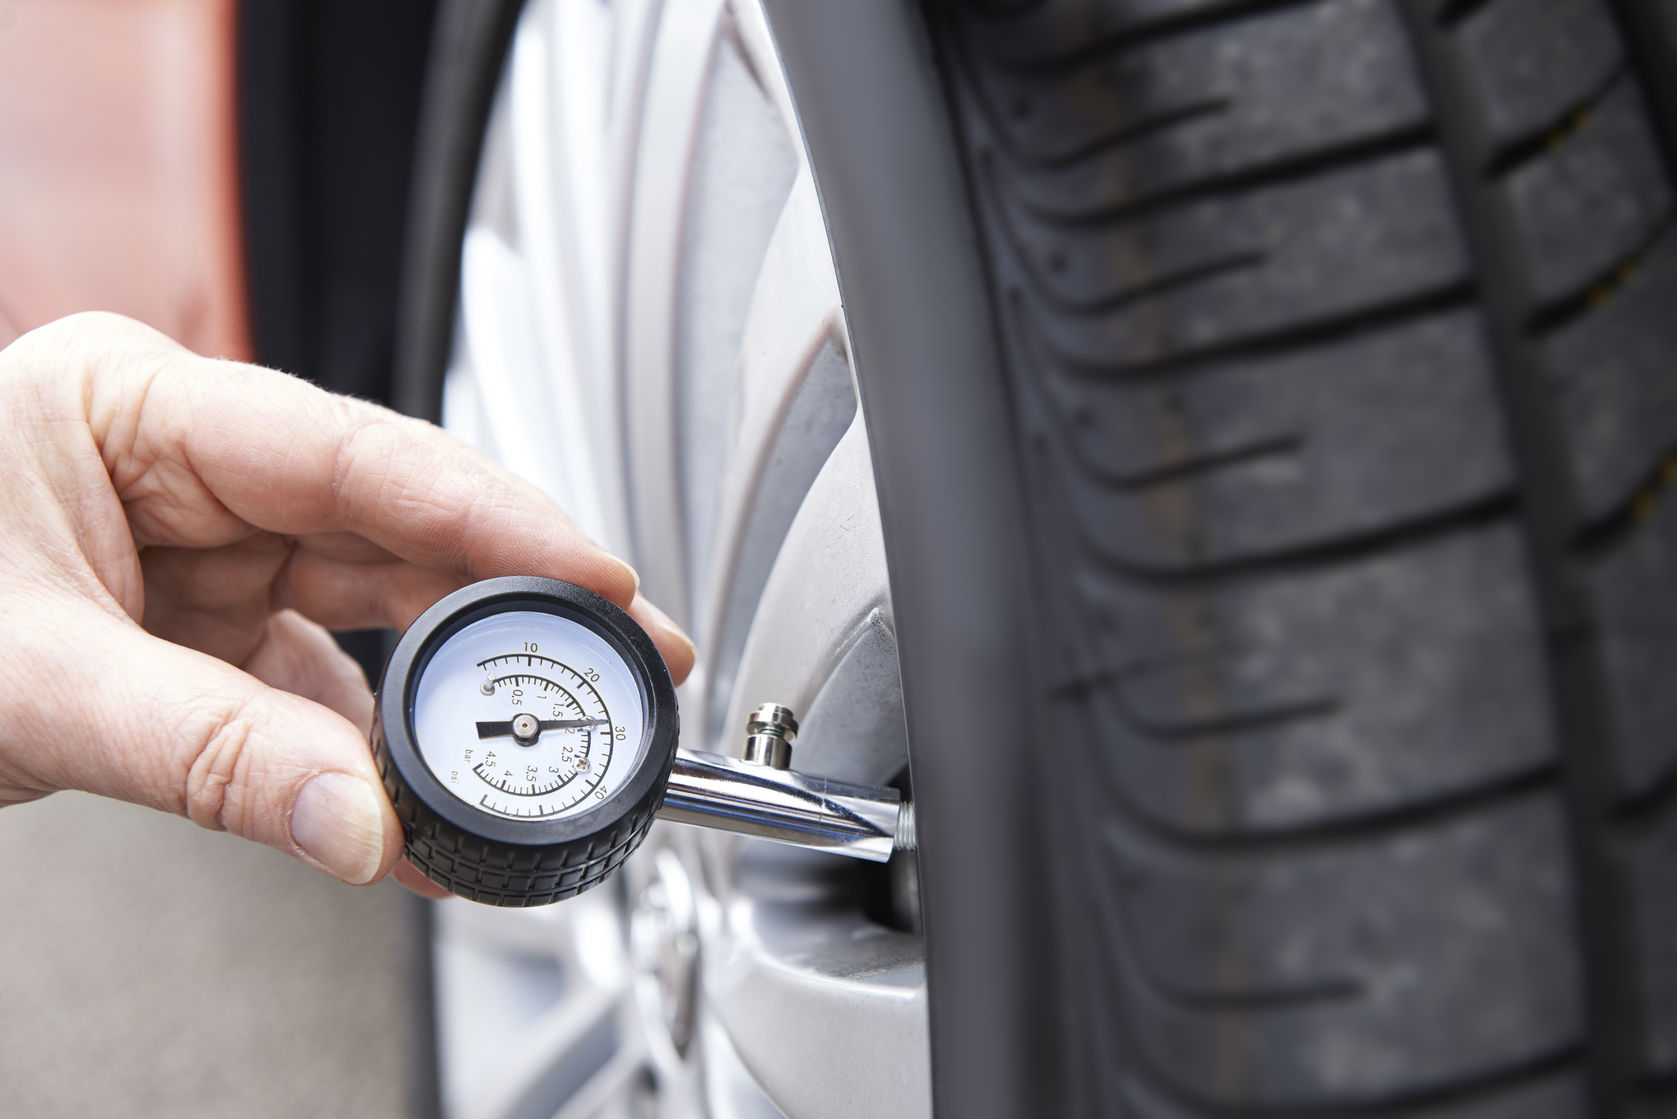 Checking tyre pressures is essentially when the weather turns cold